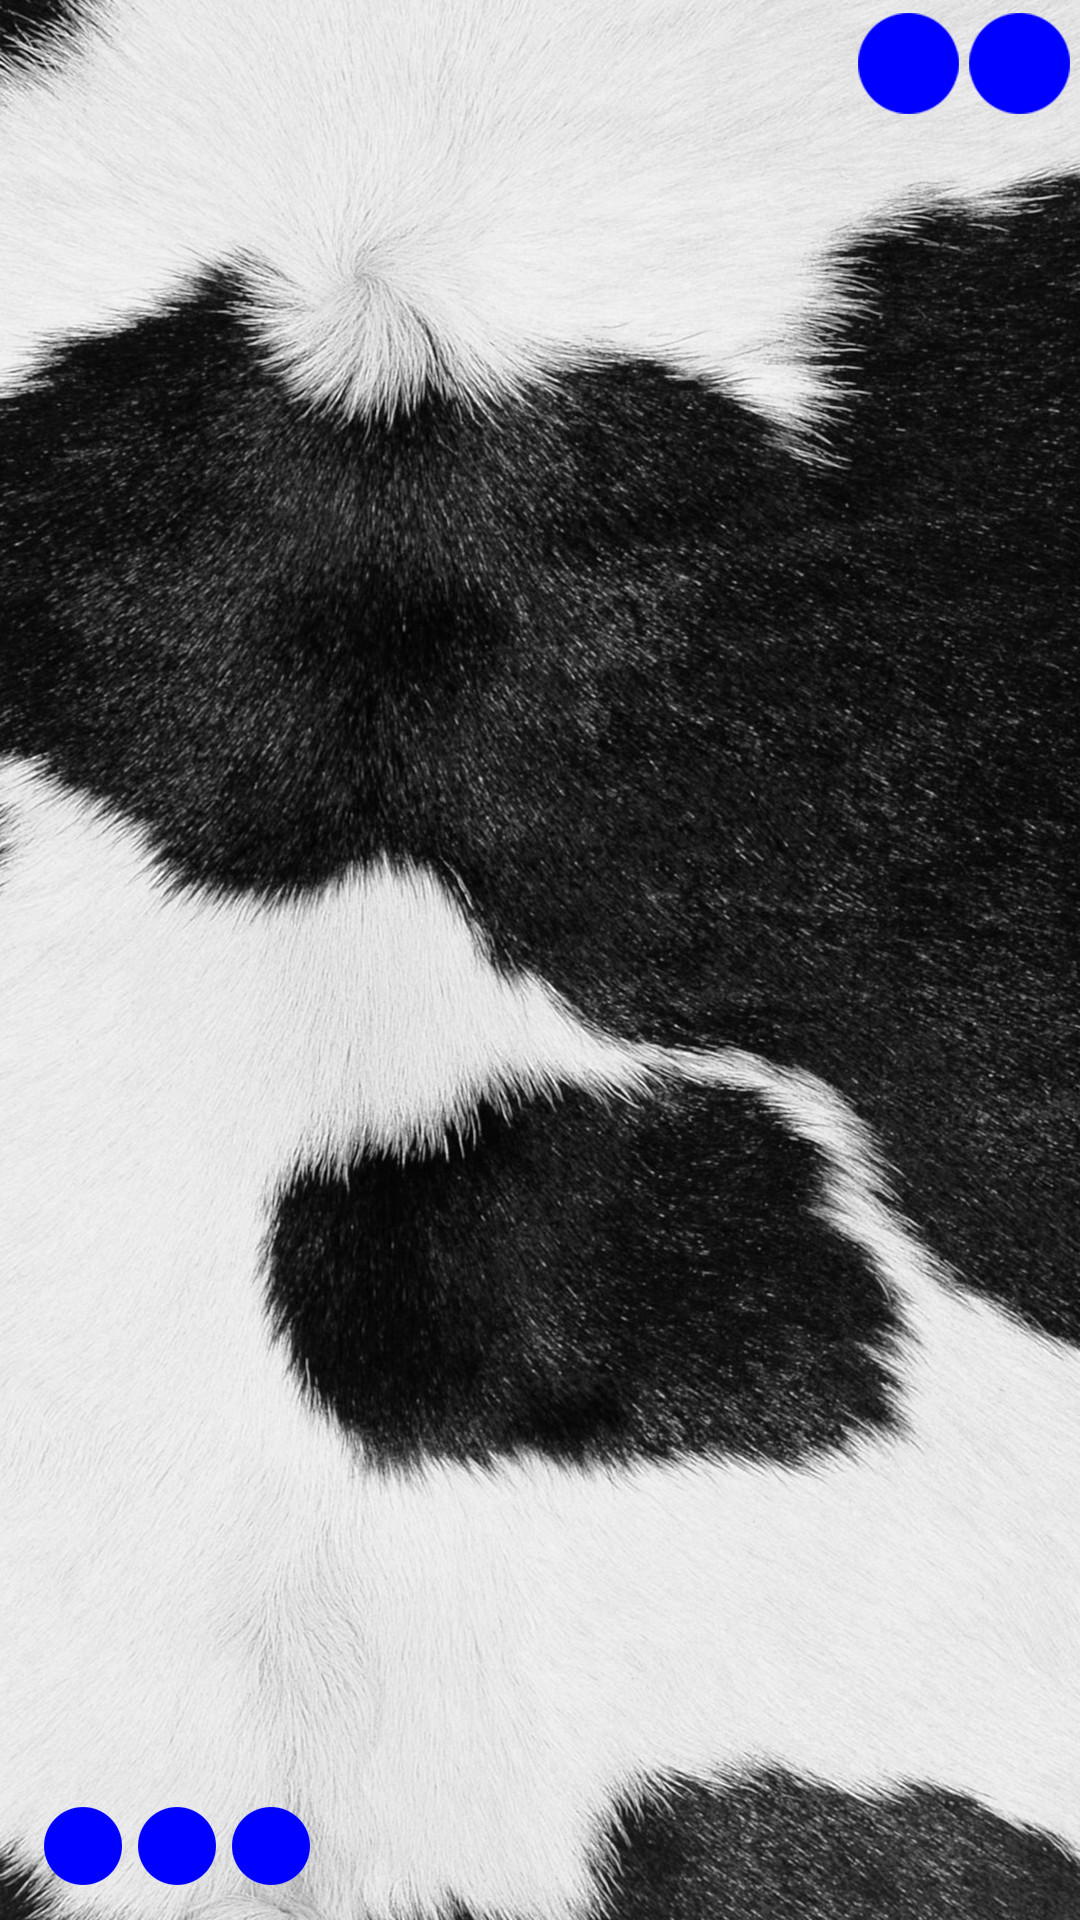 Fur Round Black and white red iPhone7 Plus Wallpaper